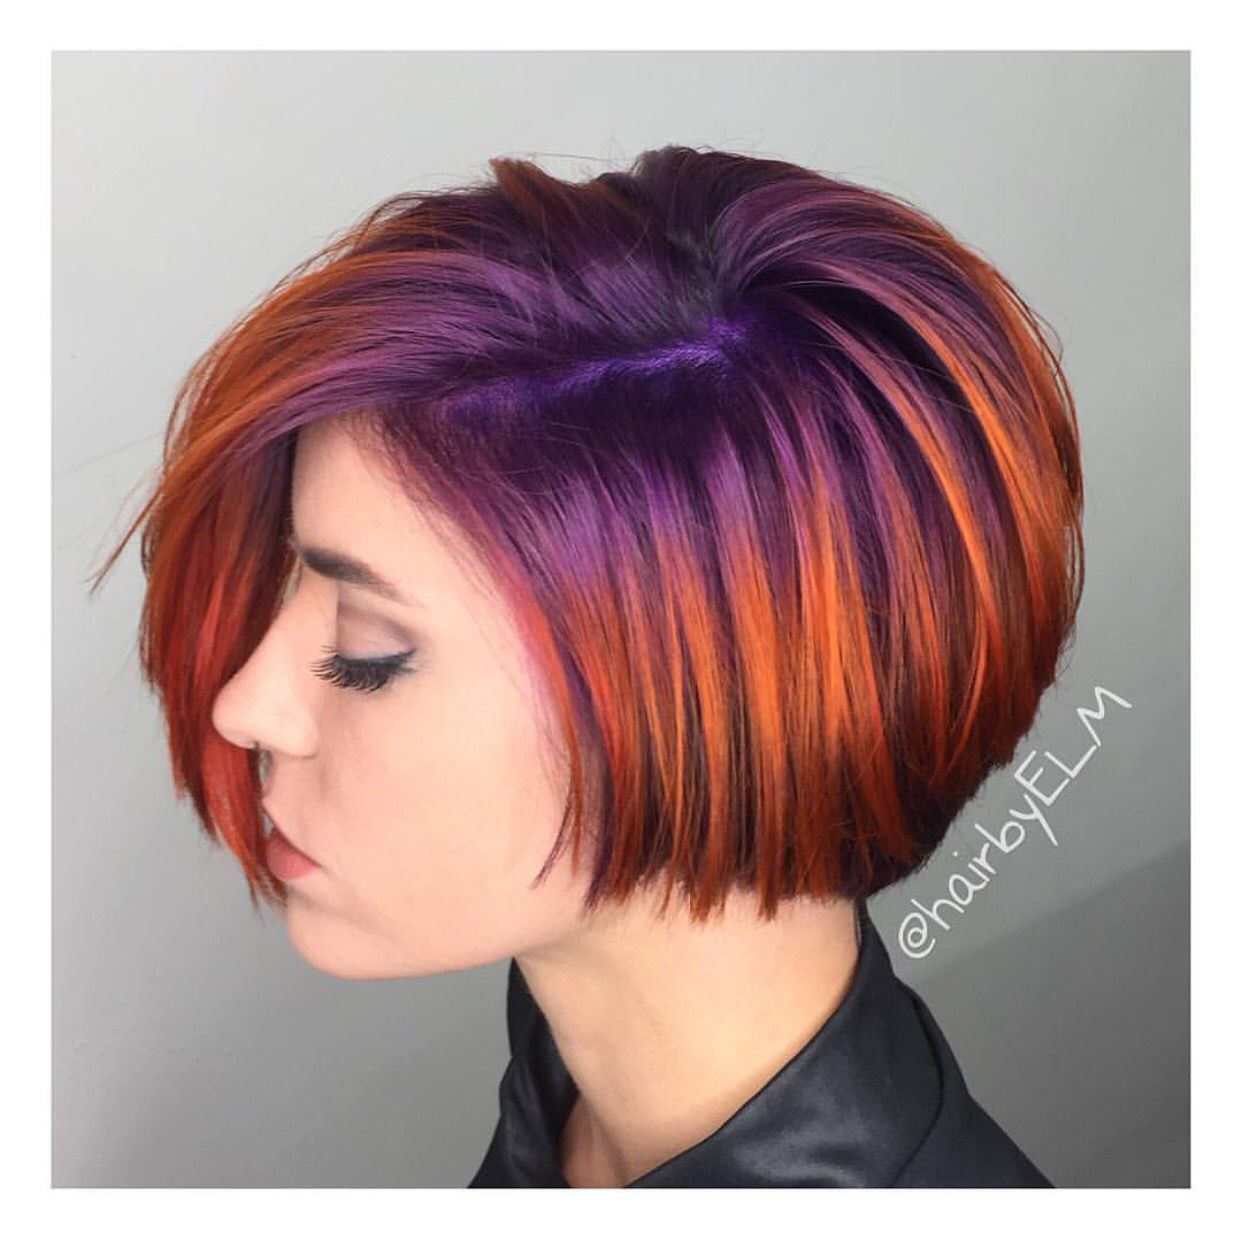 we are loving this short haircut with its bright purple to violet